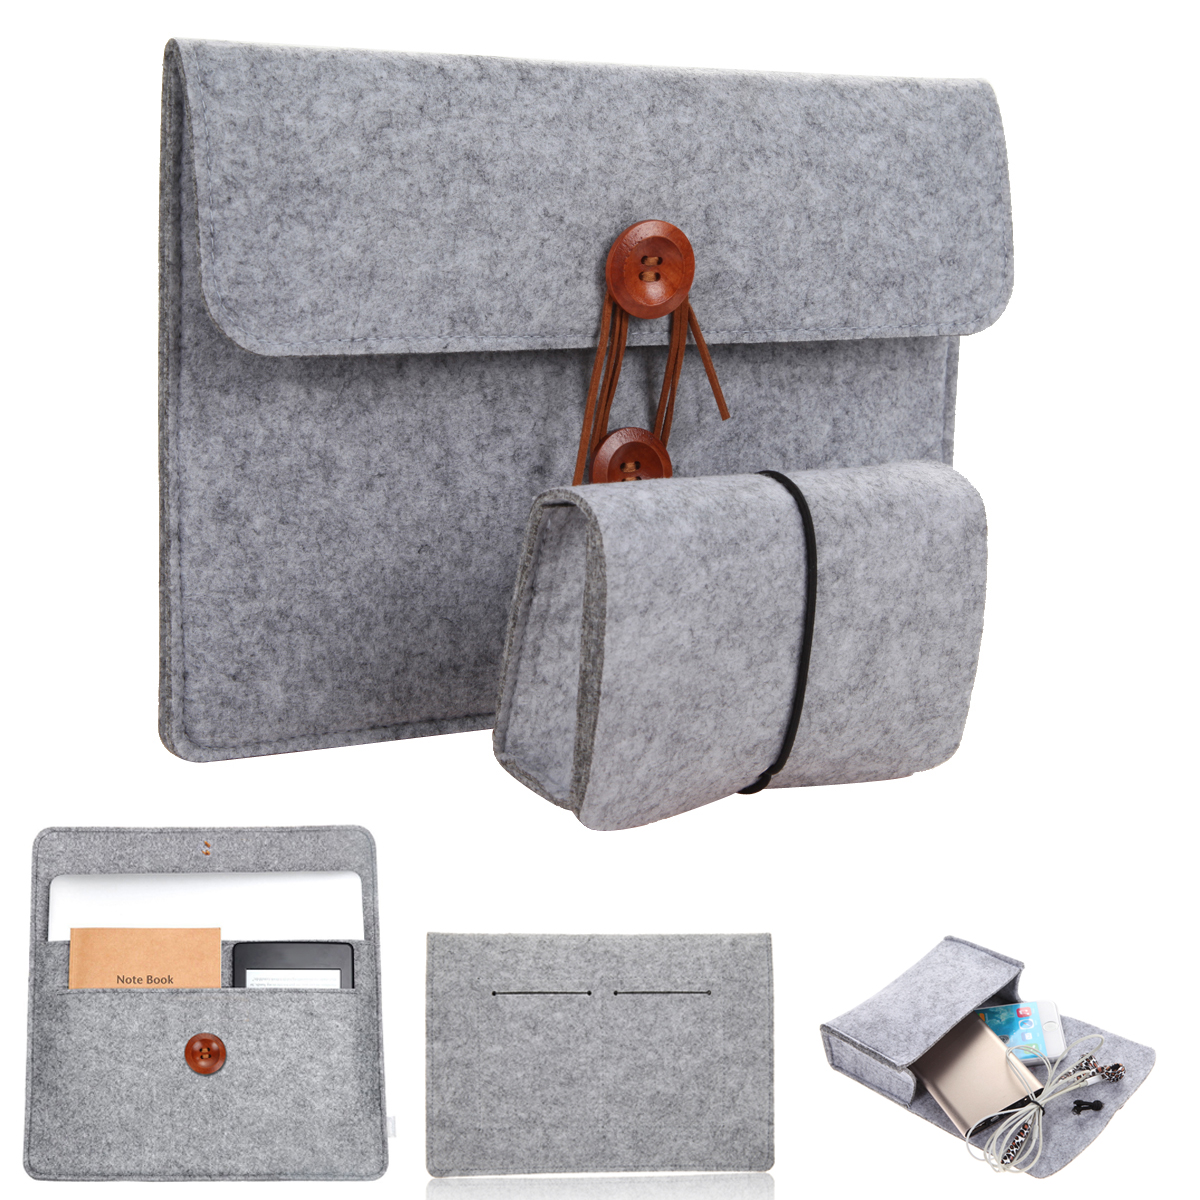 Protective Pouch Bag Sleeve Cases Cover for iPad Macbook Pro/Air/Samsung Notebook 101112131415 Best Price